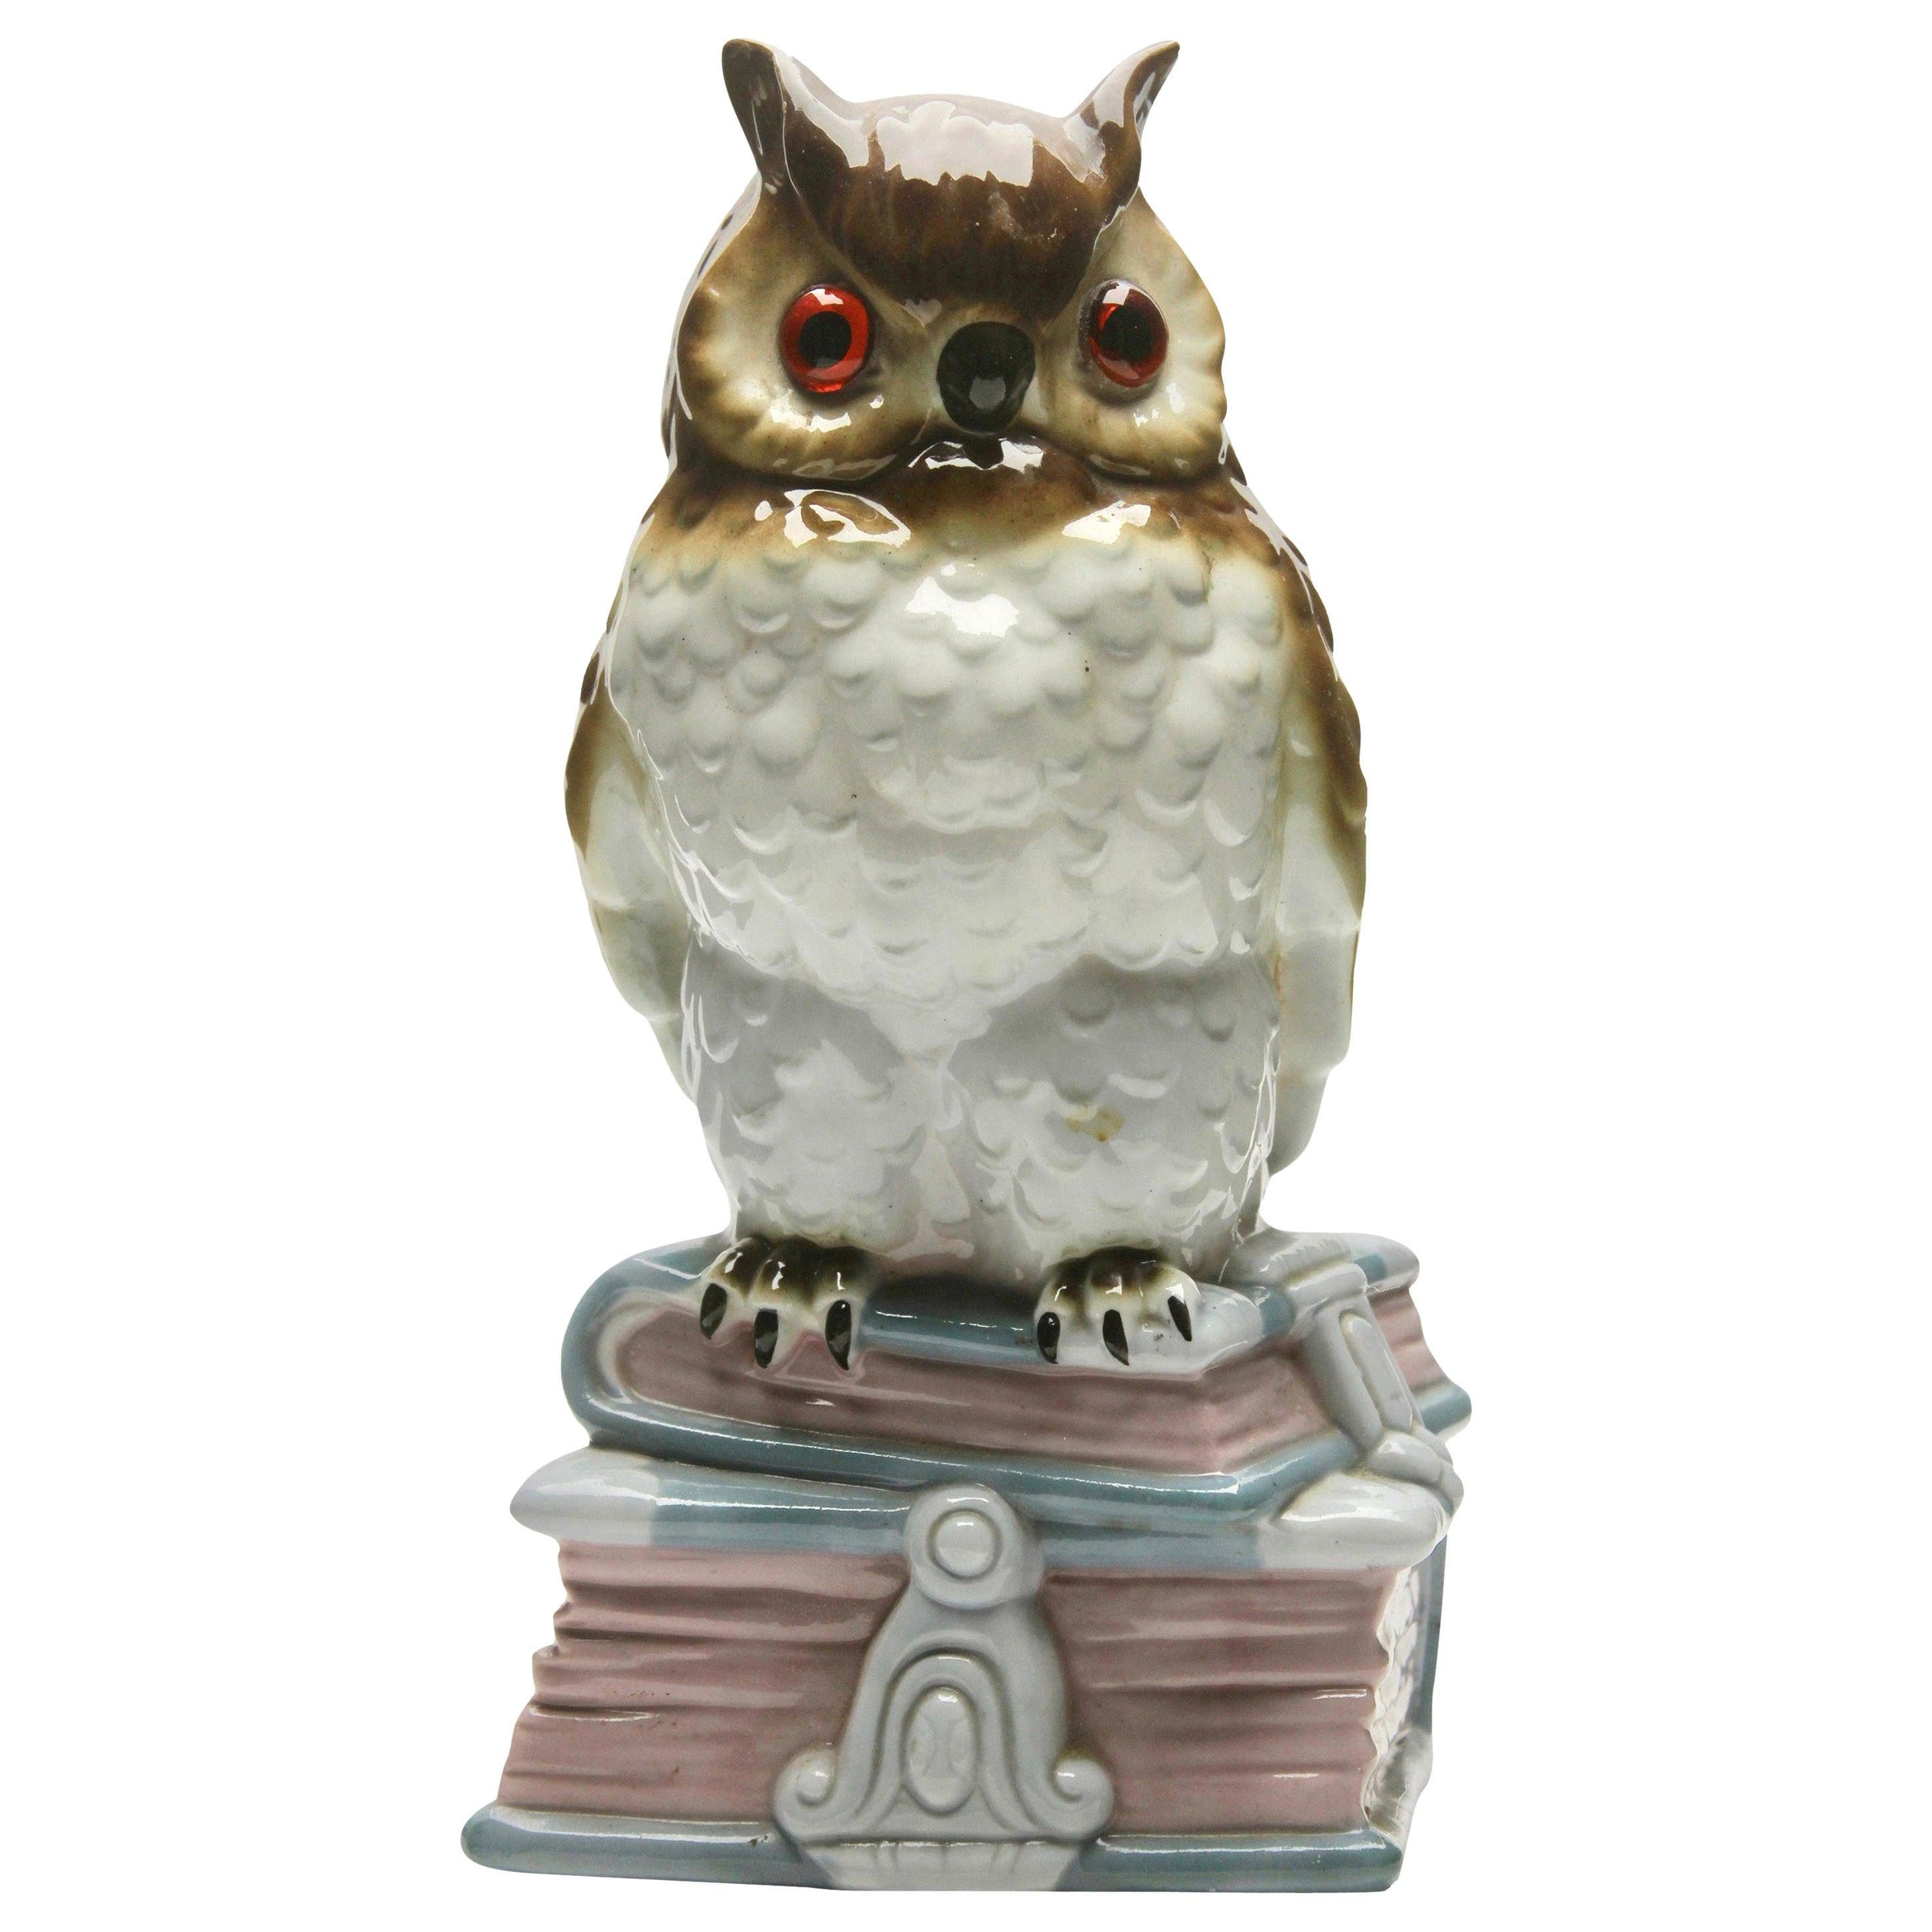 Porcelain Figurine, Air Purifier or Table Lamp, Owl or Eagle Owl from the 1930